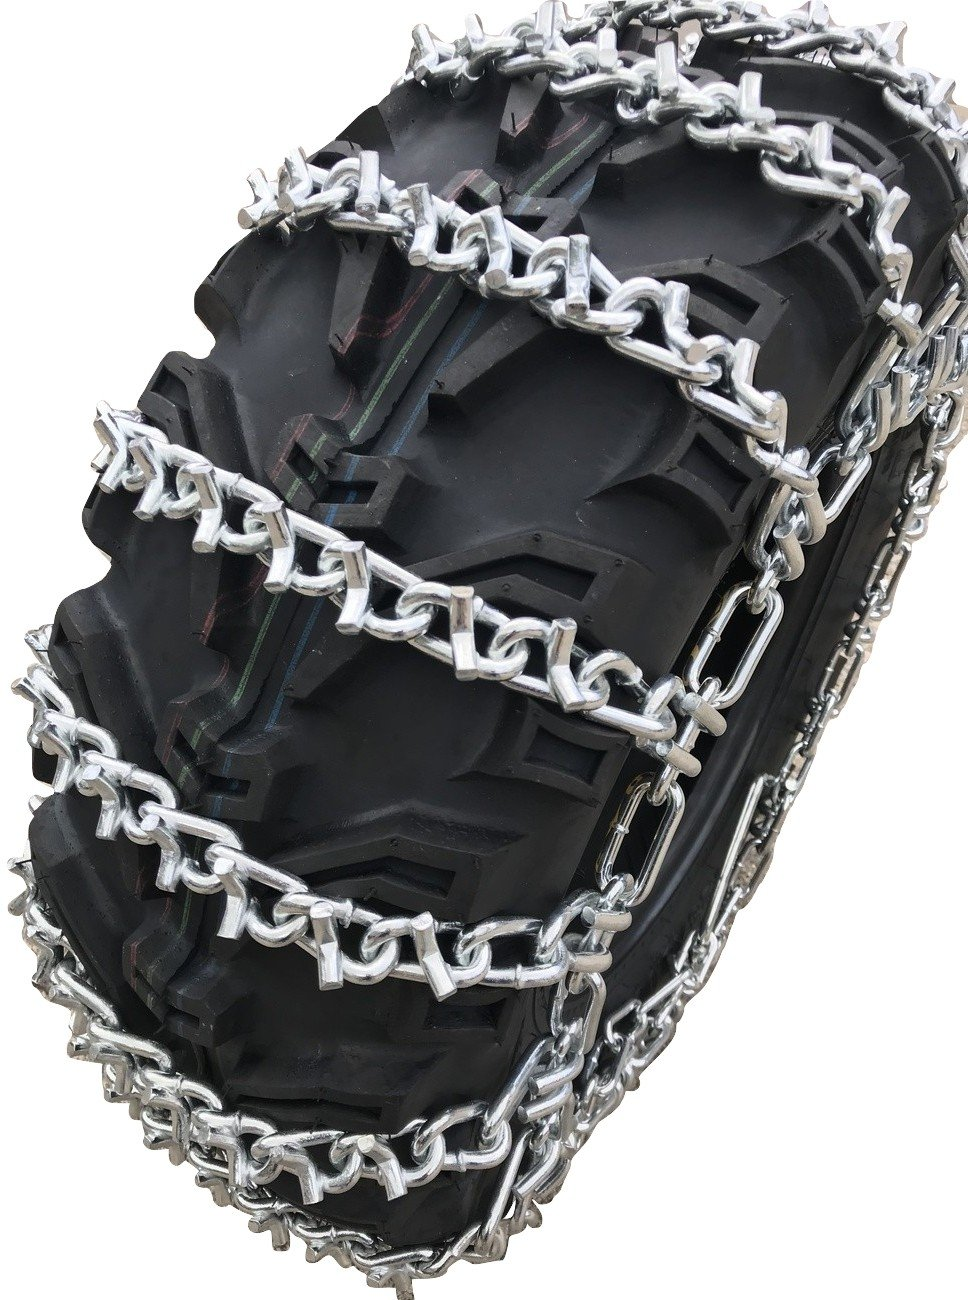 2 Chains - Tire Size 25x8x12 Front Snow Chains 2006 Can-Am Outlander 400